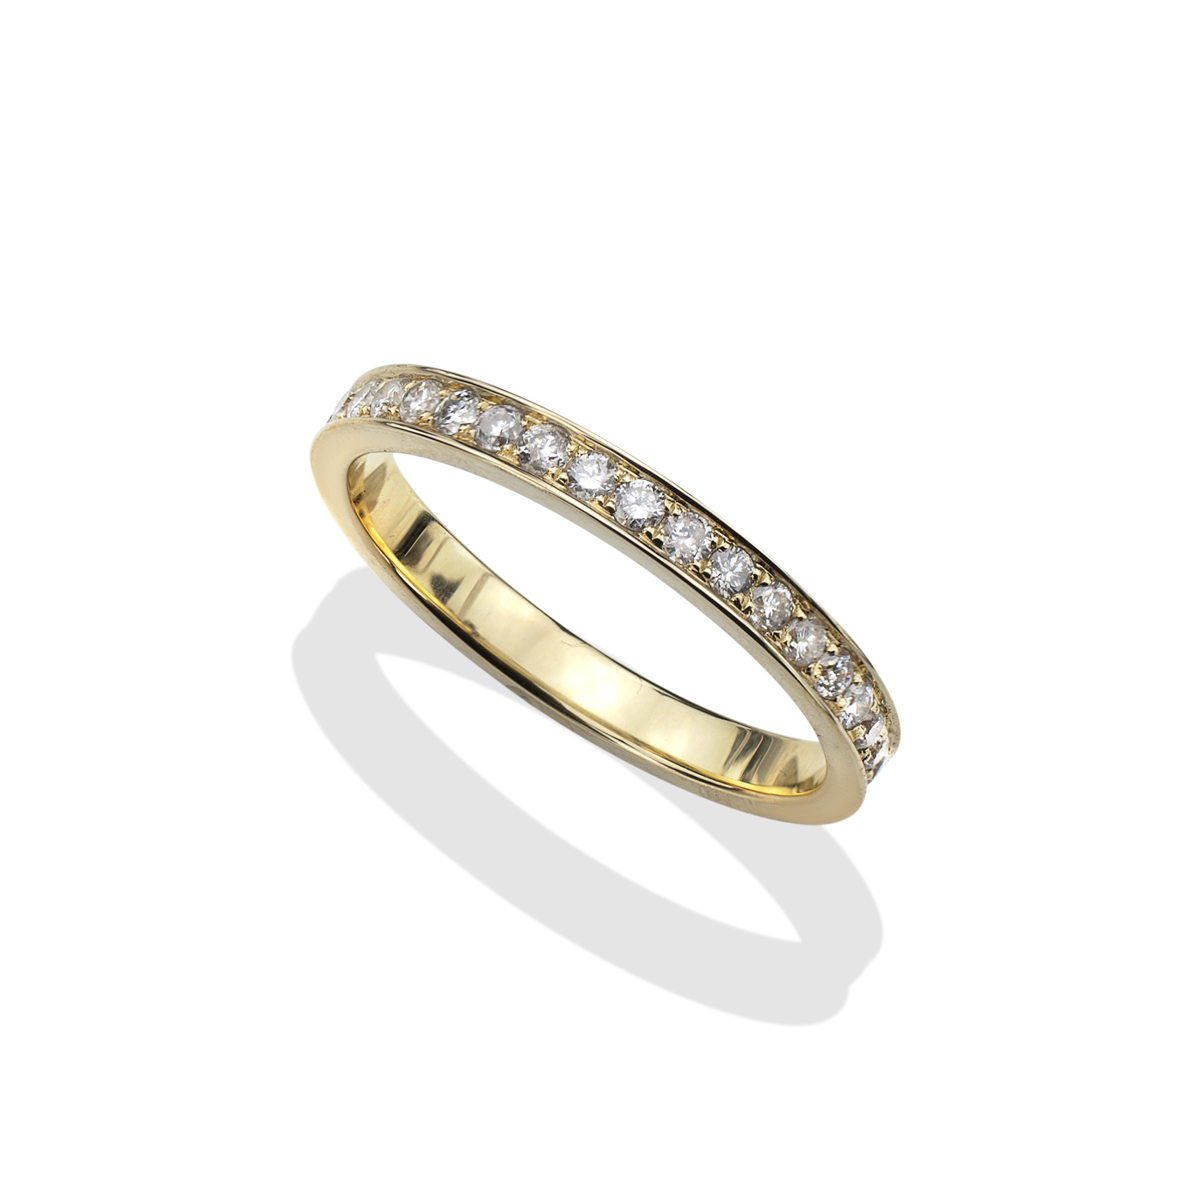 p bands in wedding diamond ring cubic zirconia mens white brushed over gold eternity men band silver s sterling plated